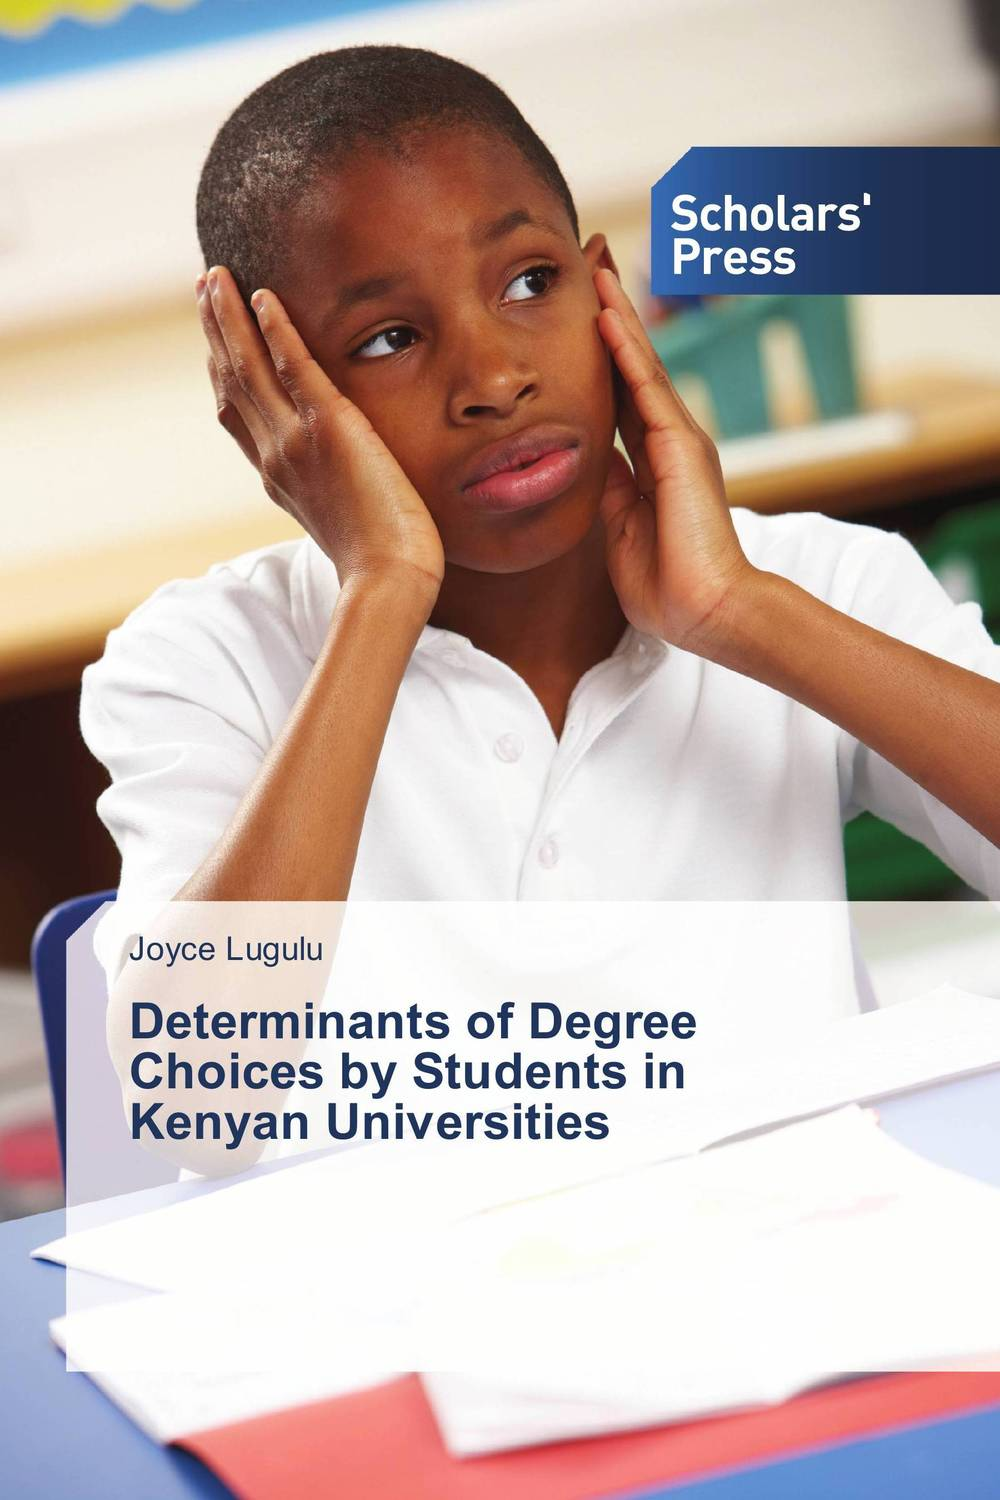 Determinants of Degree Choices by Students in Kenyan Universities course enrollment decisions